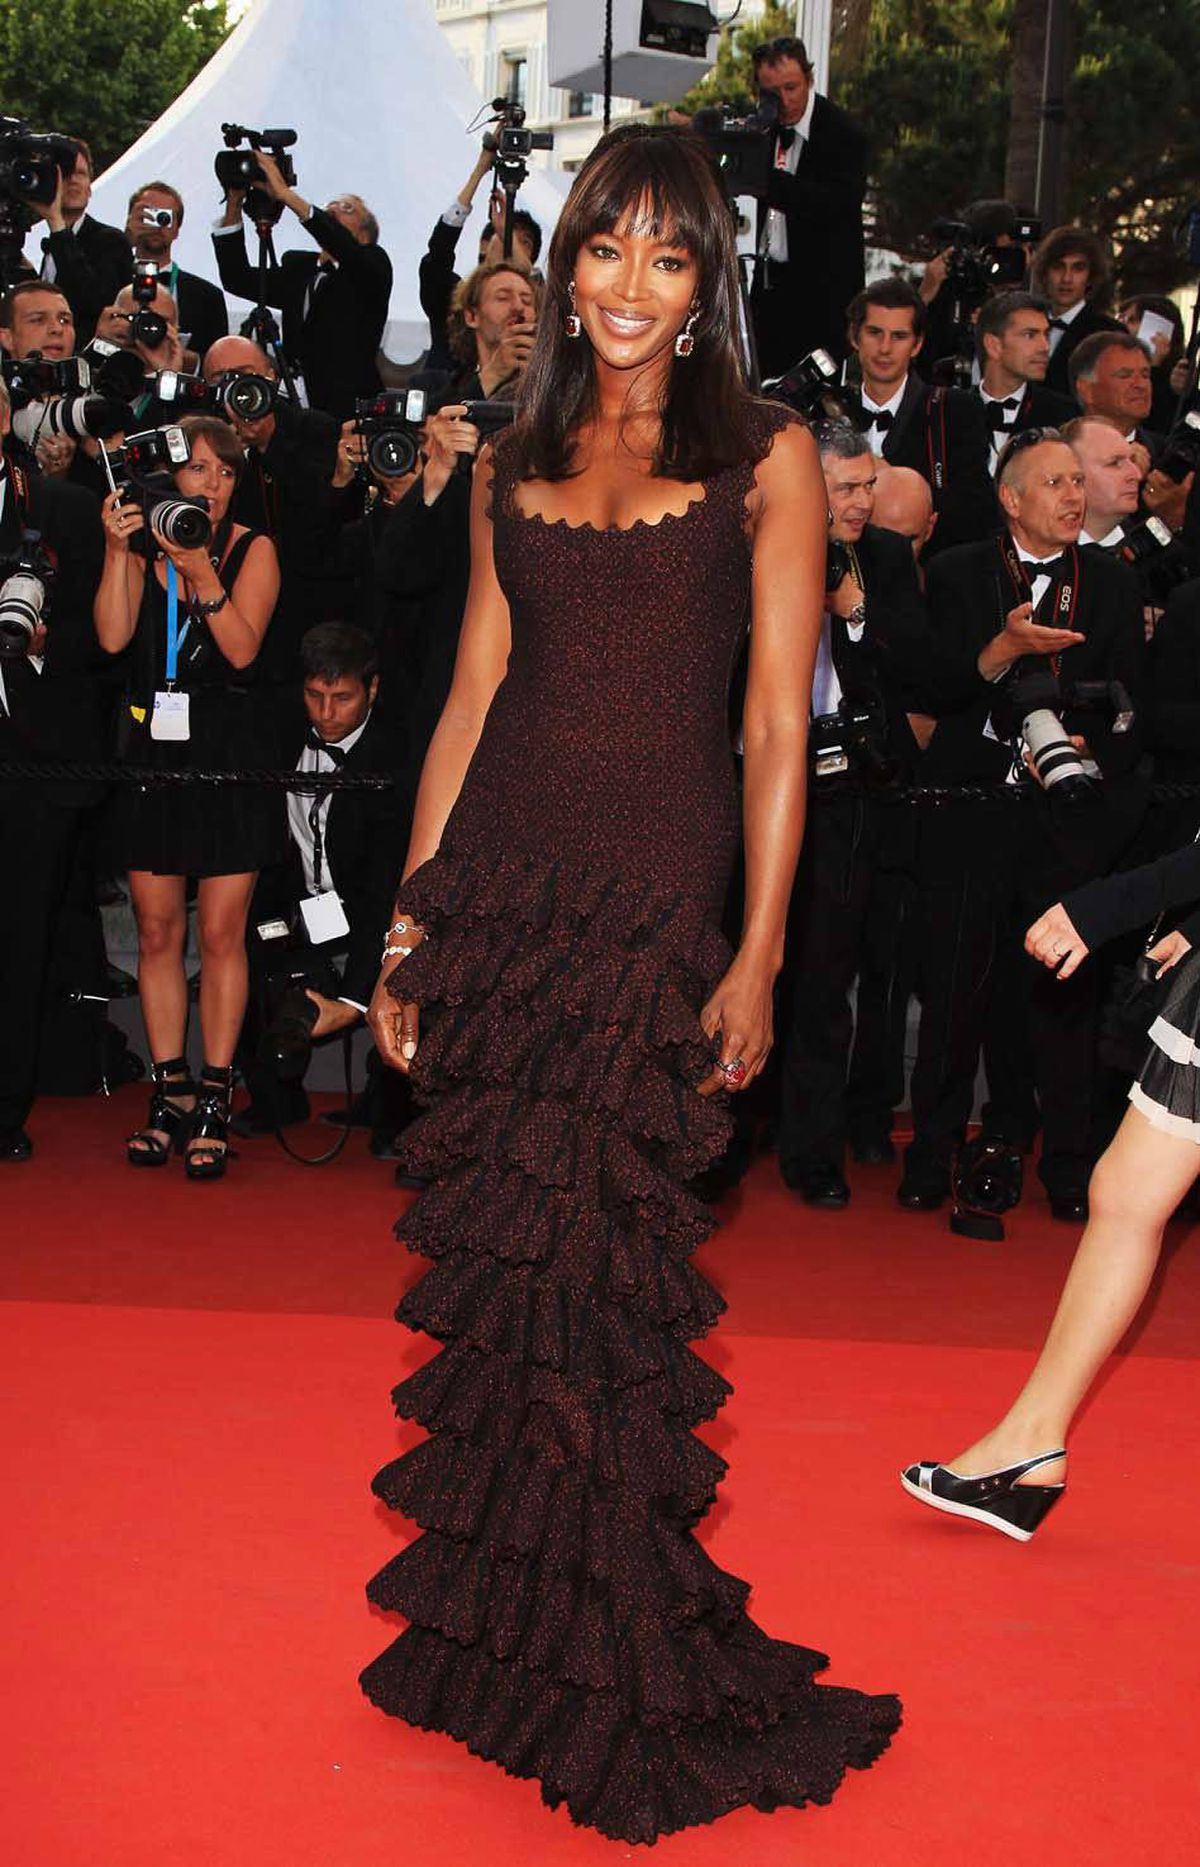 """Naomi Campbell poses on the red carpet at the """"The Beaver"""" premiere at the Cannes Film Festival on Tueday. That rude leg you see surging into the photo on the right was later brutally ripped off and used to beat its incautious owner about the head."""